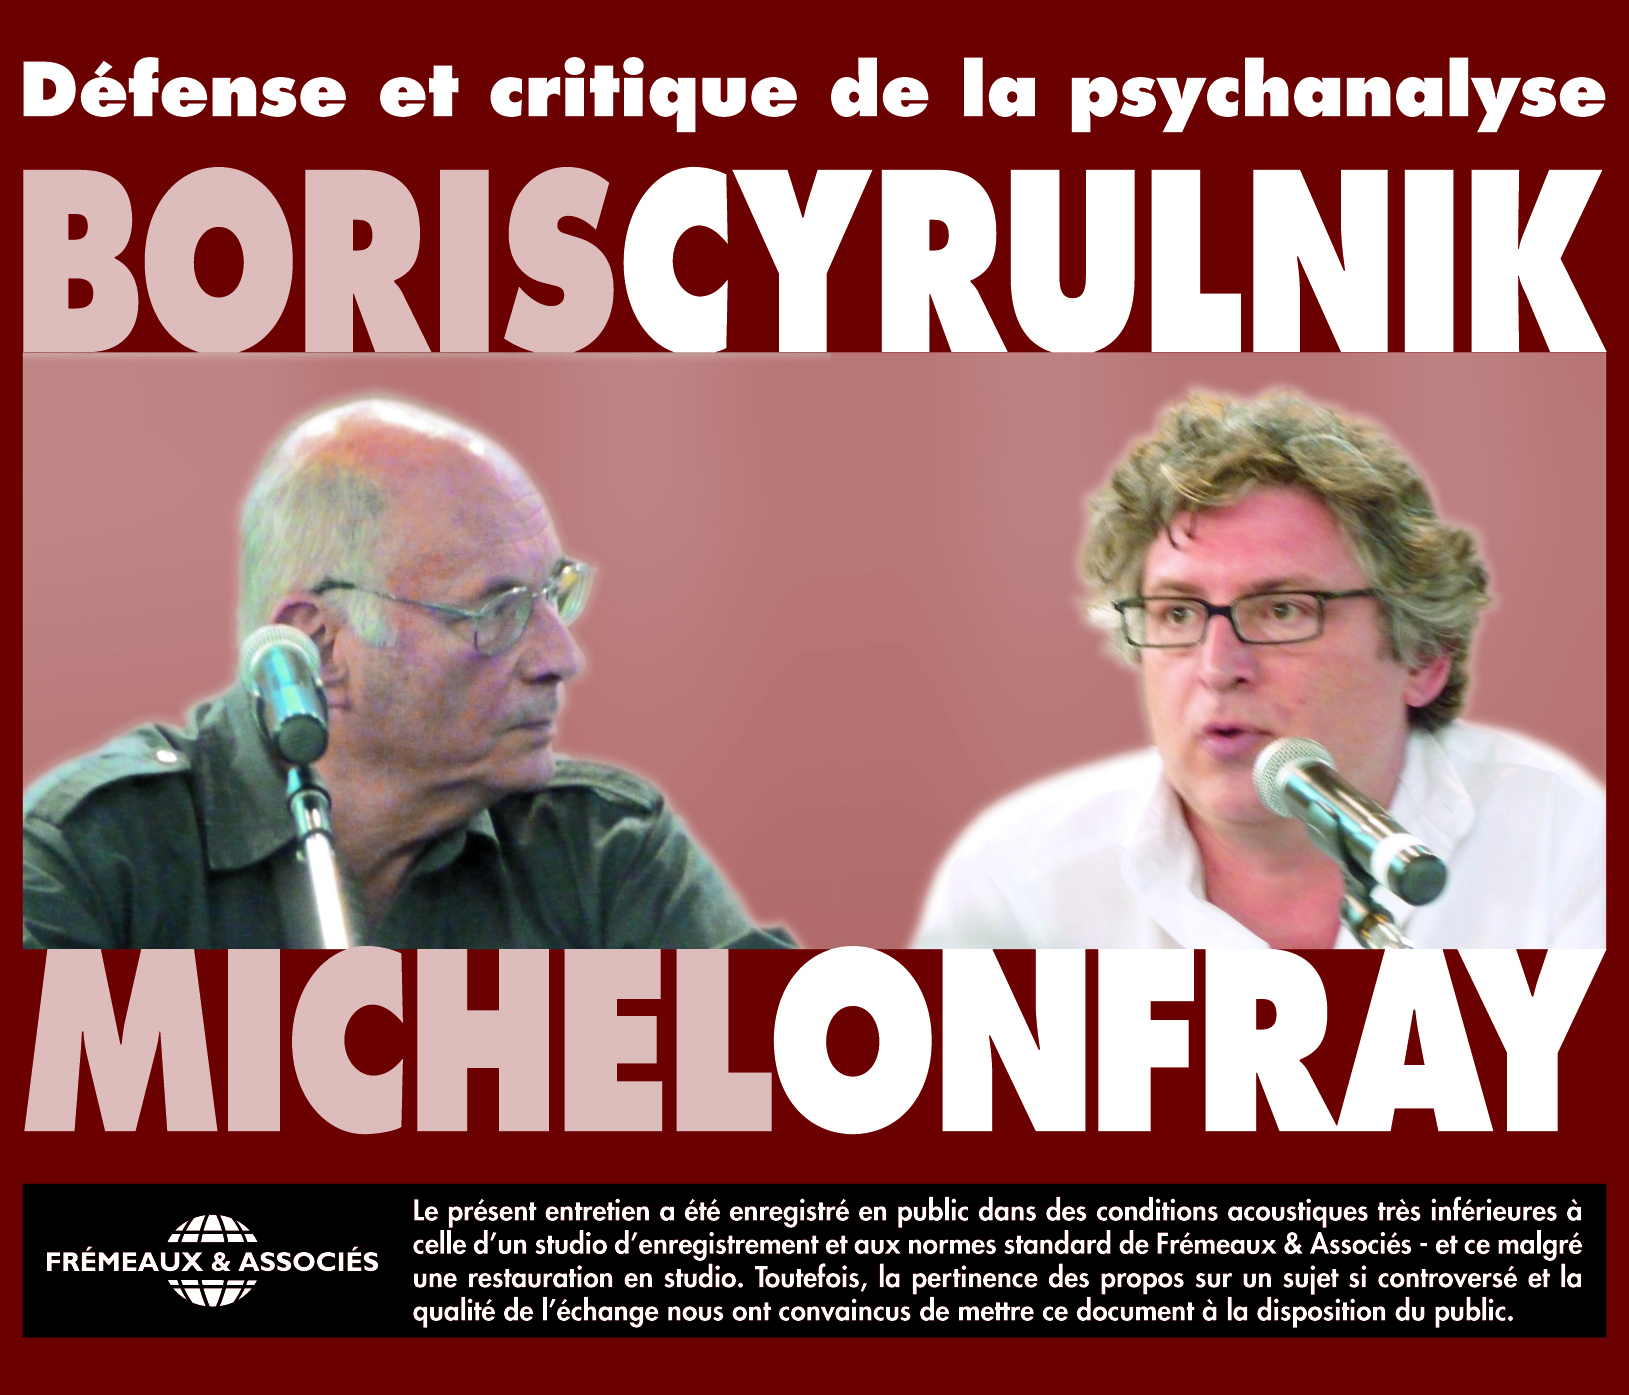 DEFENSE ET CRITIQUE DE LA PSYCHANALYSE DEBAT ENTRE MICHEL ONFRAY ET BORIS CYRULNIK SUR CD AUDIO